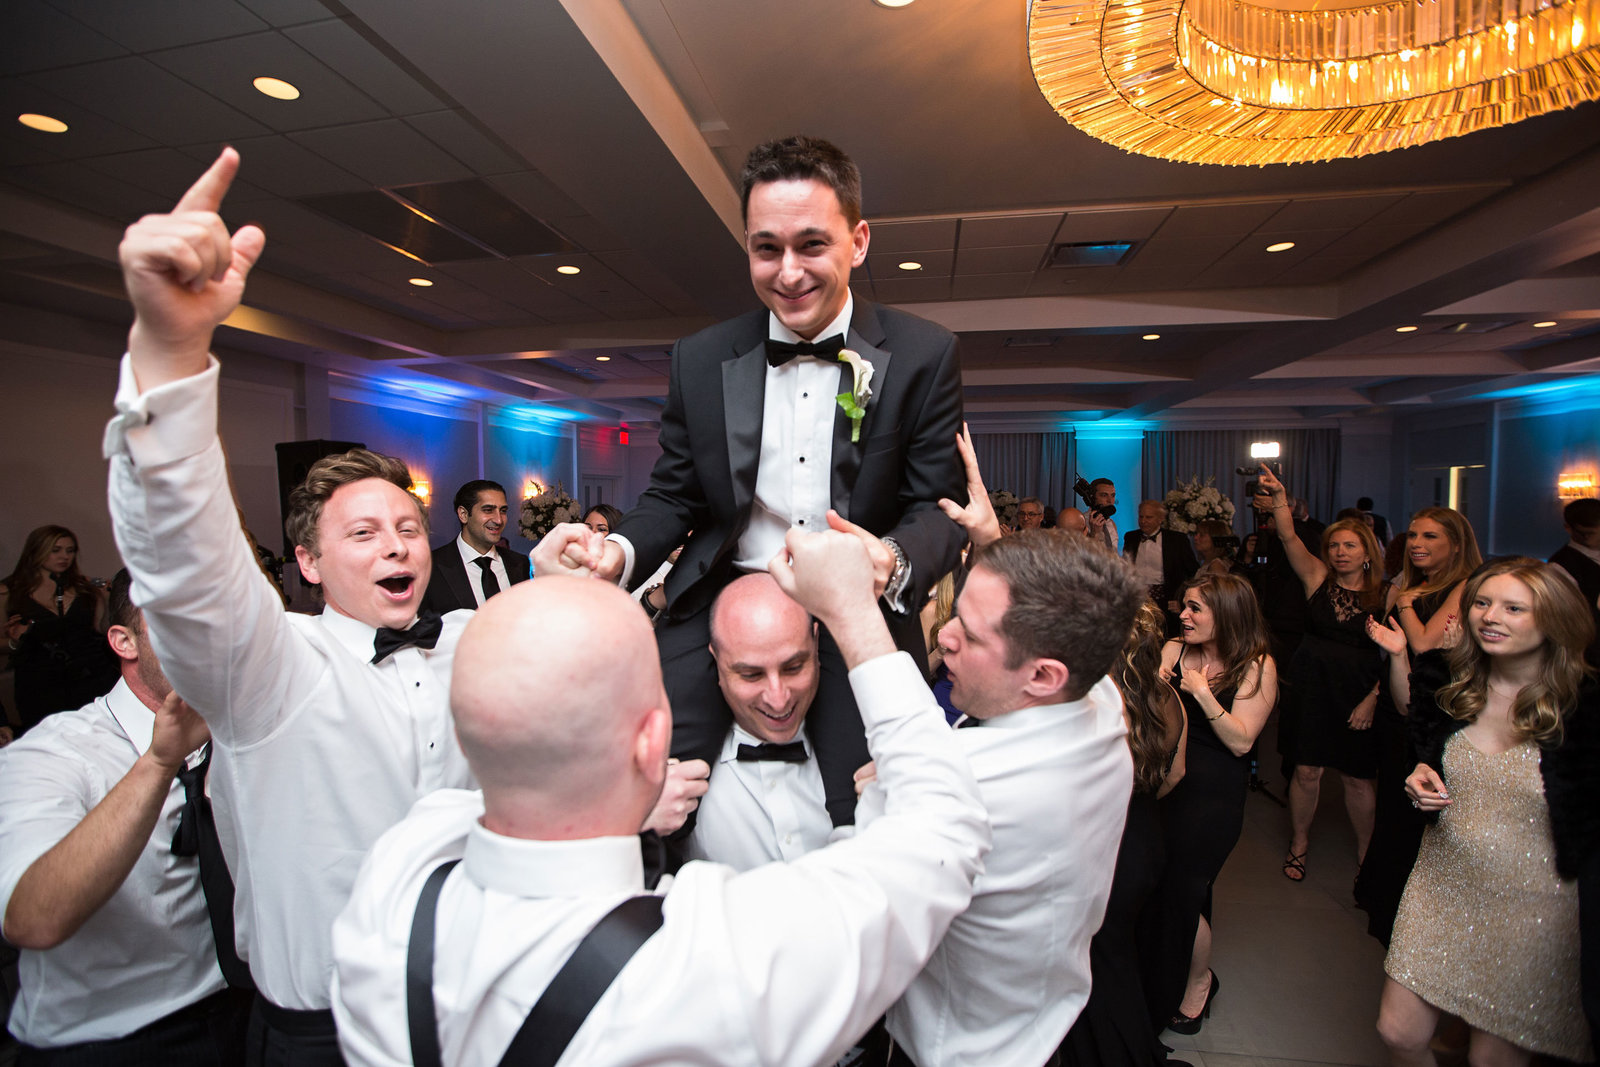 groom getting lifted by his groomsmen at Engineers Country Club